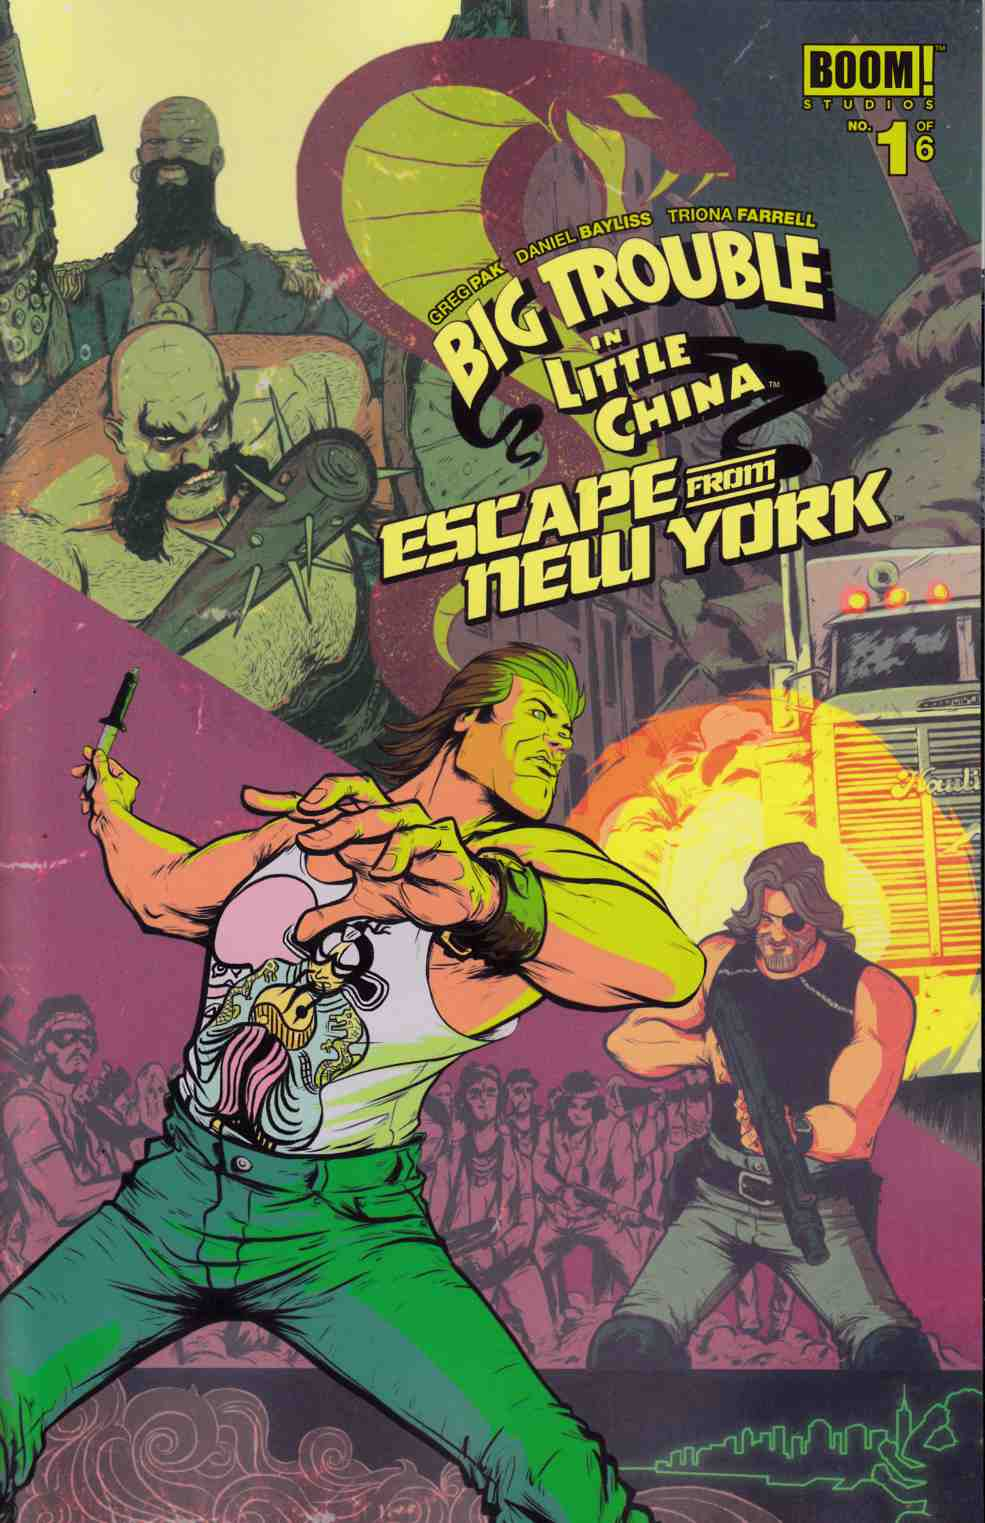 Big Trouble In Little China Escape From New York #1 Cover A [Boom Comic]